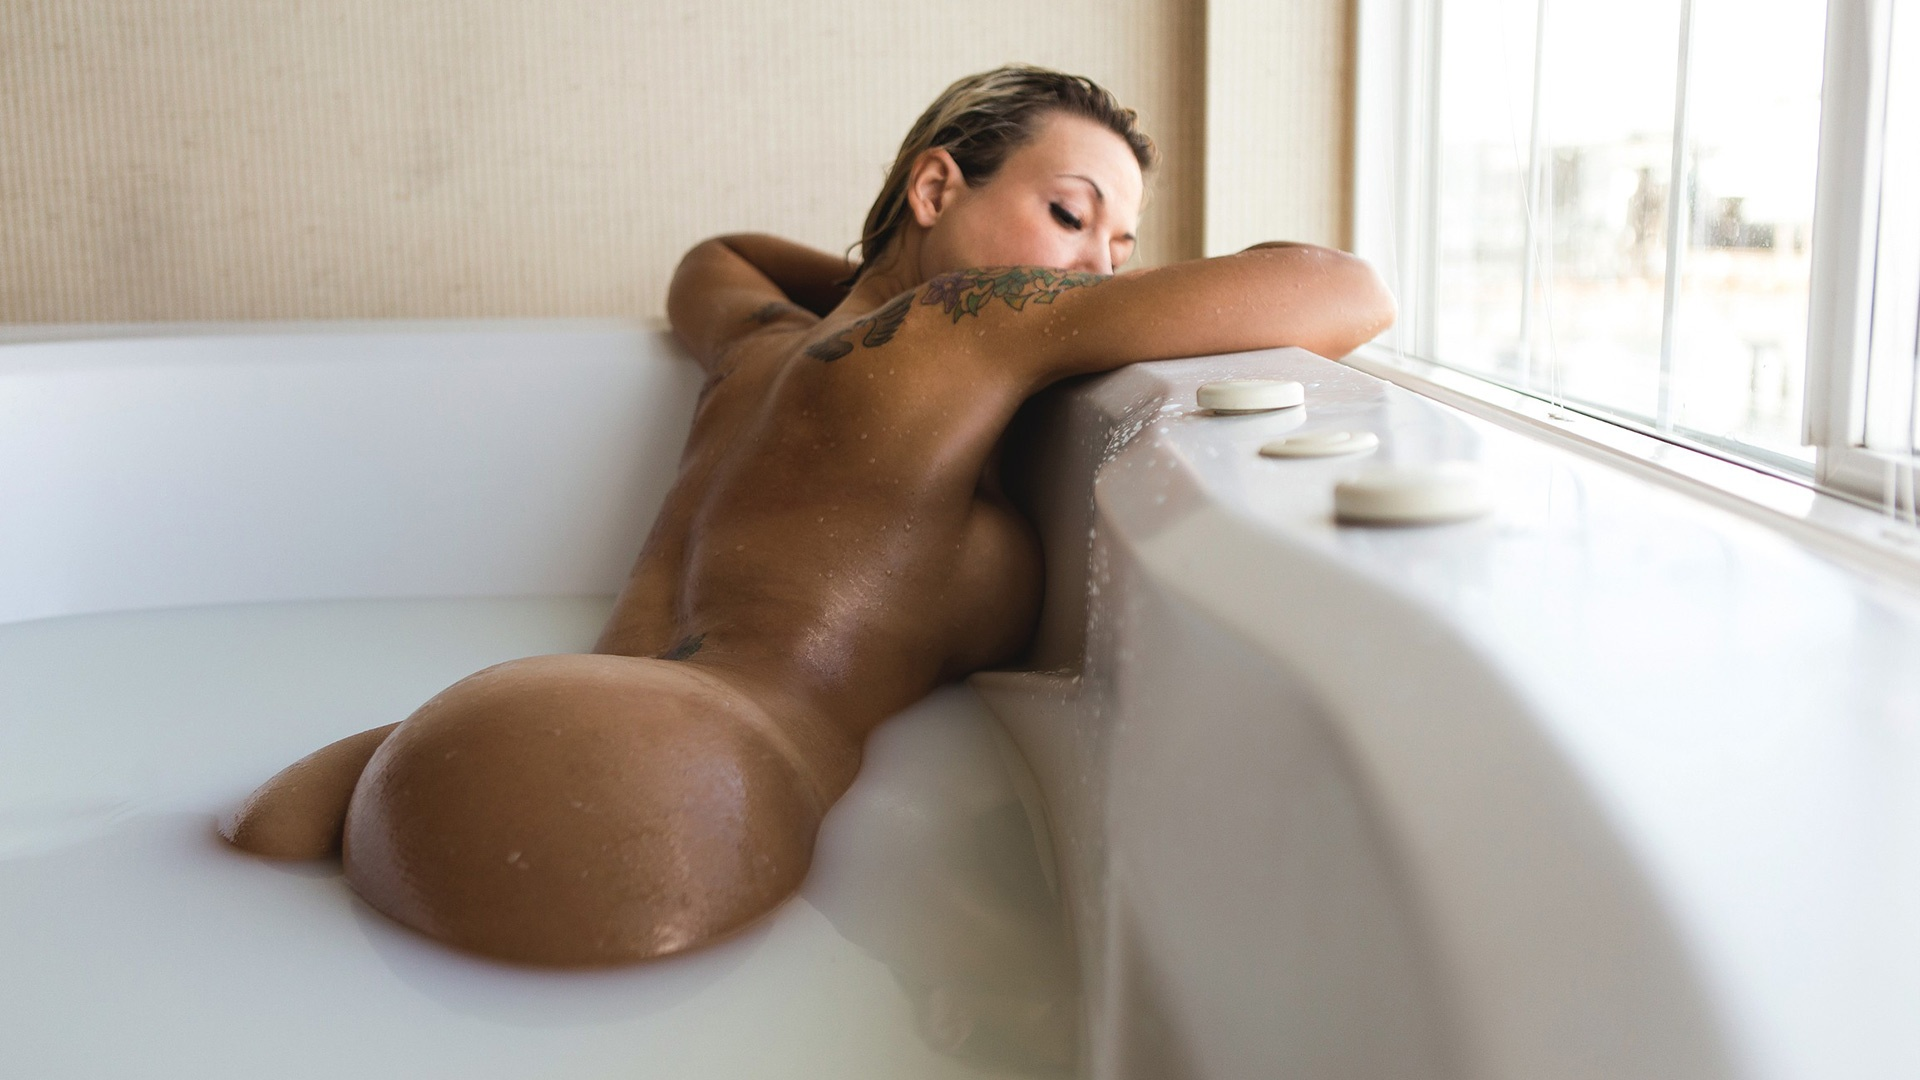 bath nude natural blonde beauty taking an erotic bath hd wallpaper ...